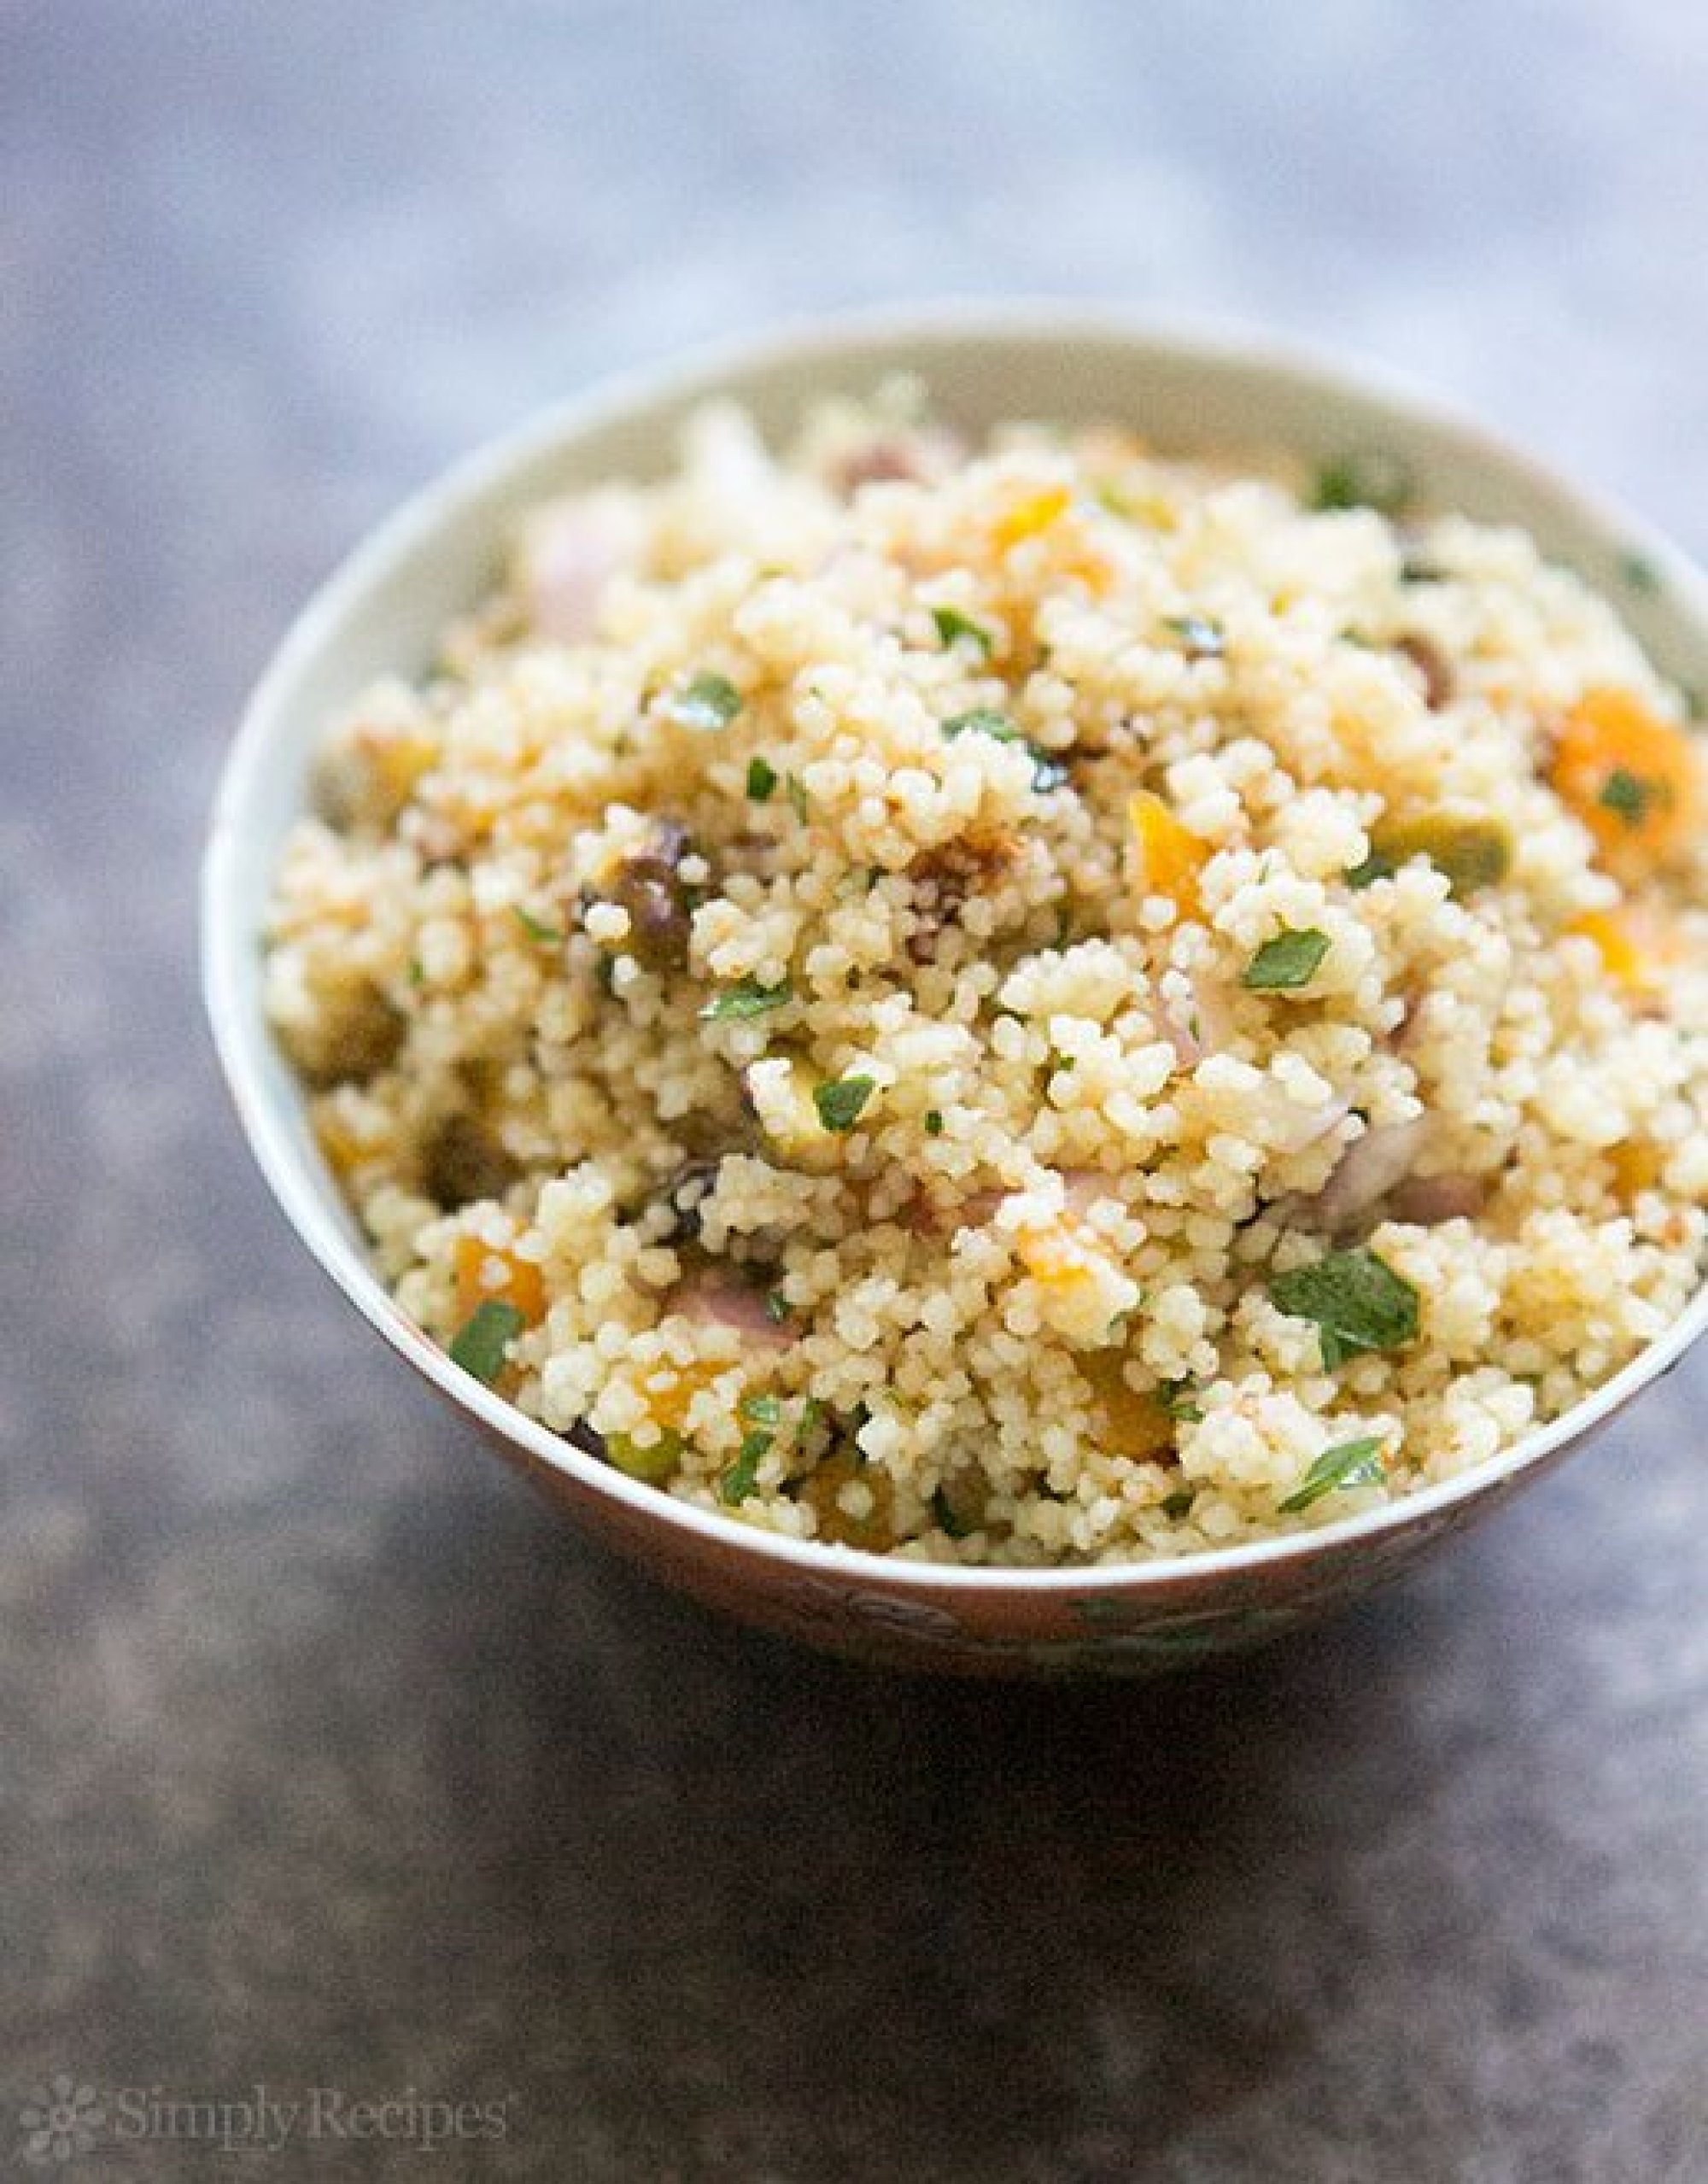 couscous recipes for breakfast lunch and dinner photos ForCouscous Food Recipe